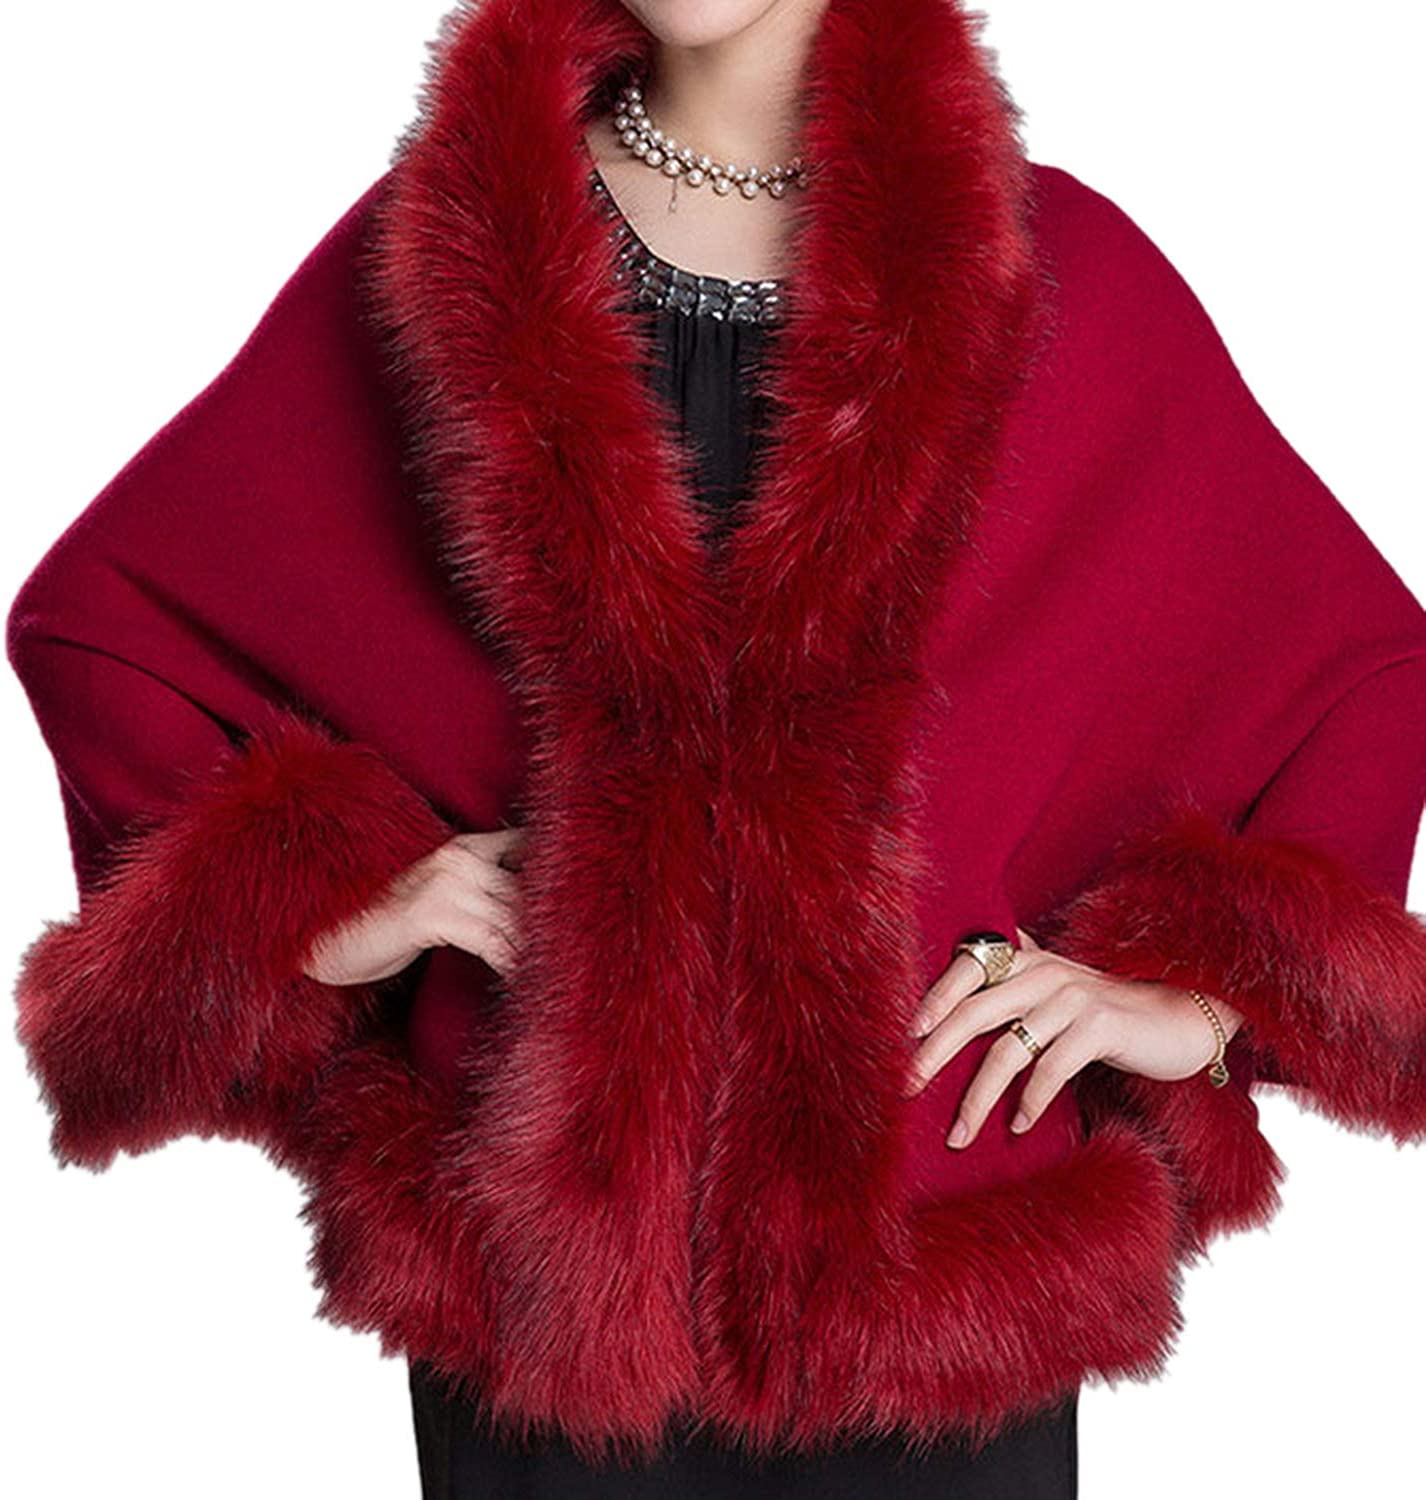 Cloud To Rain Coat Leather Grass Fox Fur Collar Wool Fur Coat,Wine Red,One Size